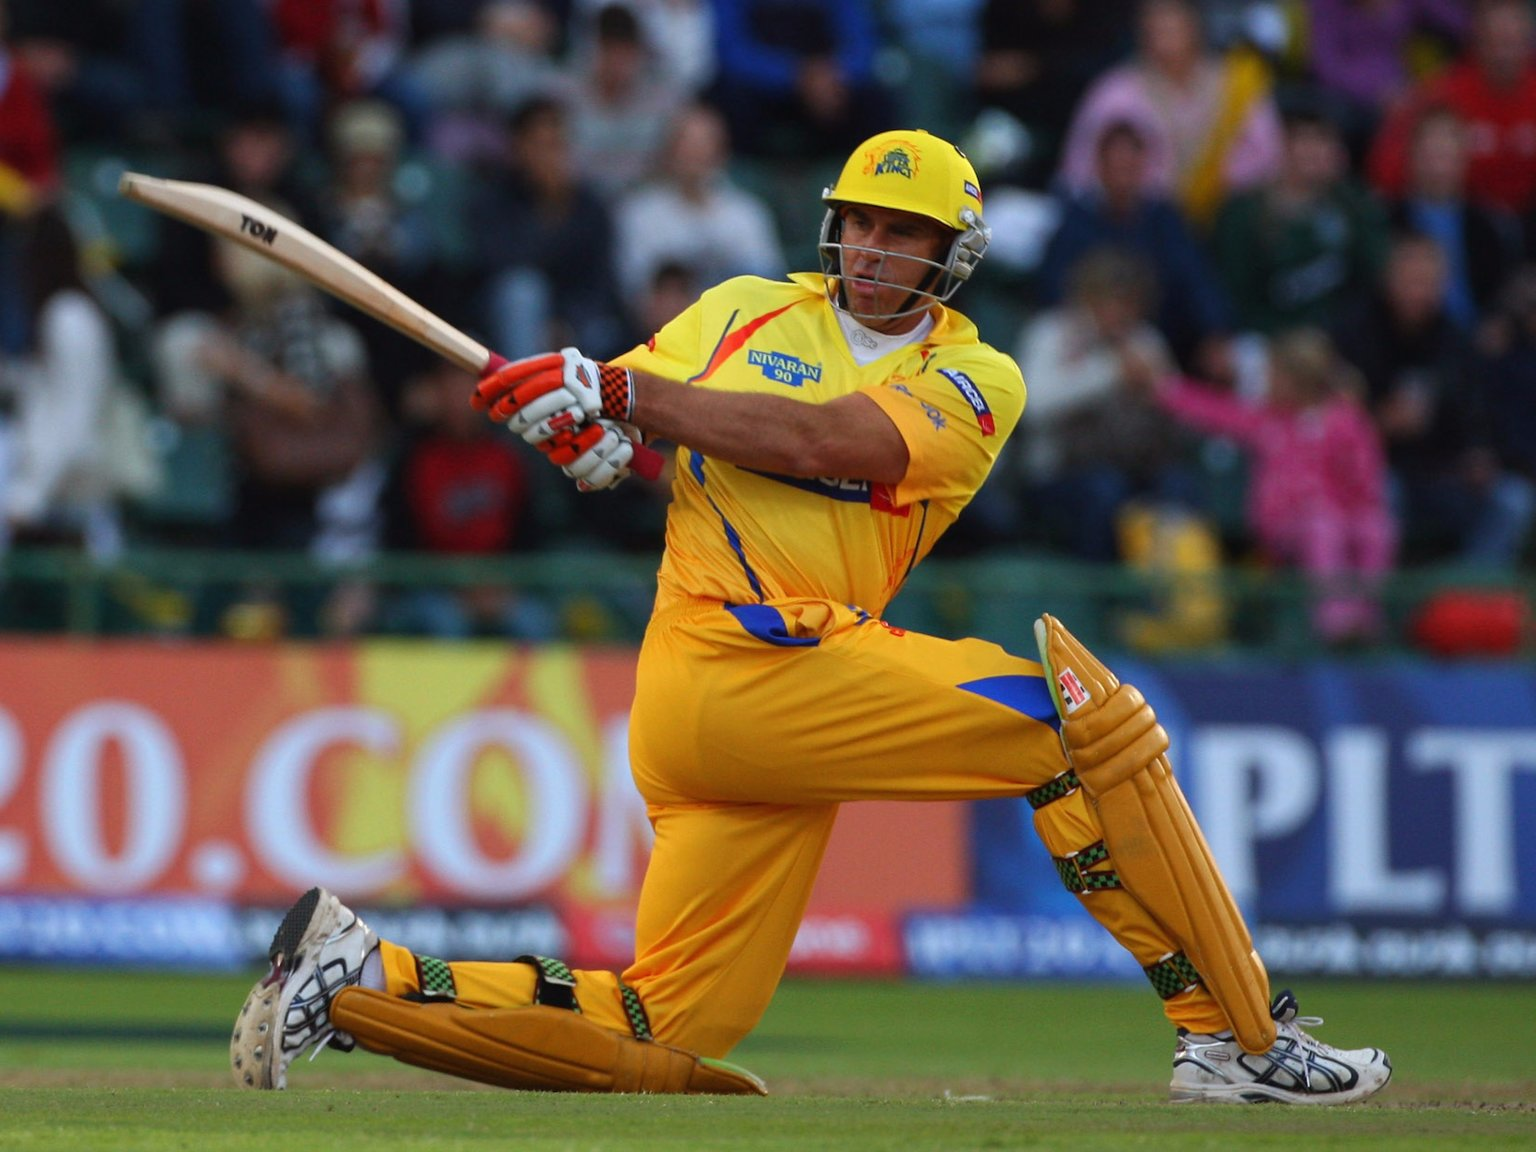 Watch ICC Cricket World Cup 2011 through Live Cricket Streaming